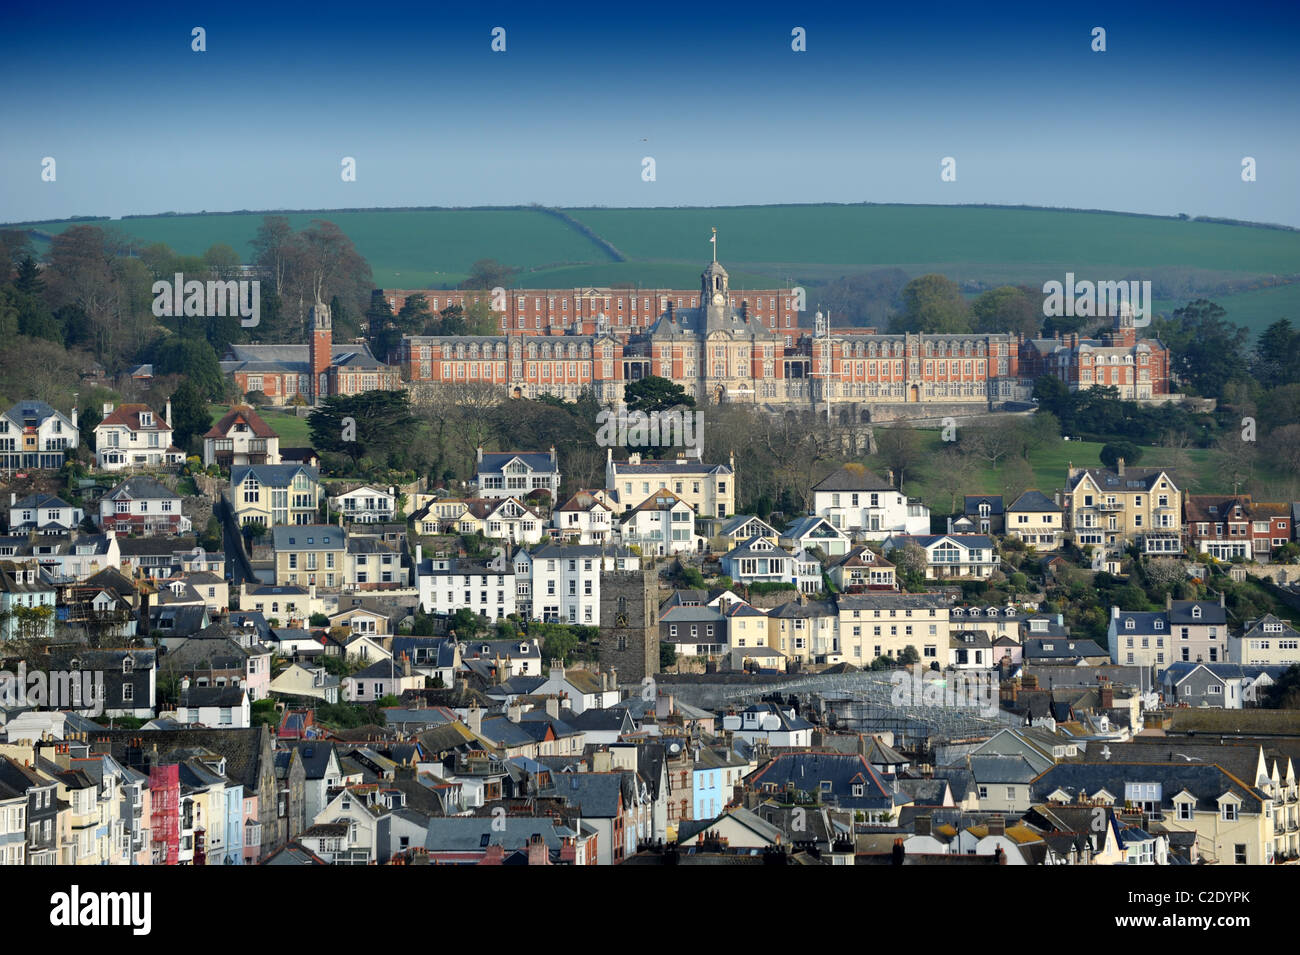 Dartmouth Devon Uk with Dartmouth Naval College at top Stock Photo